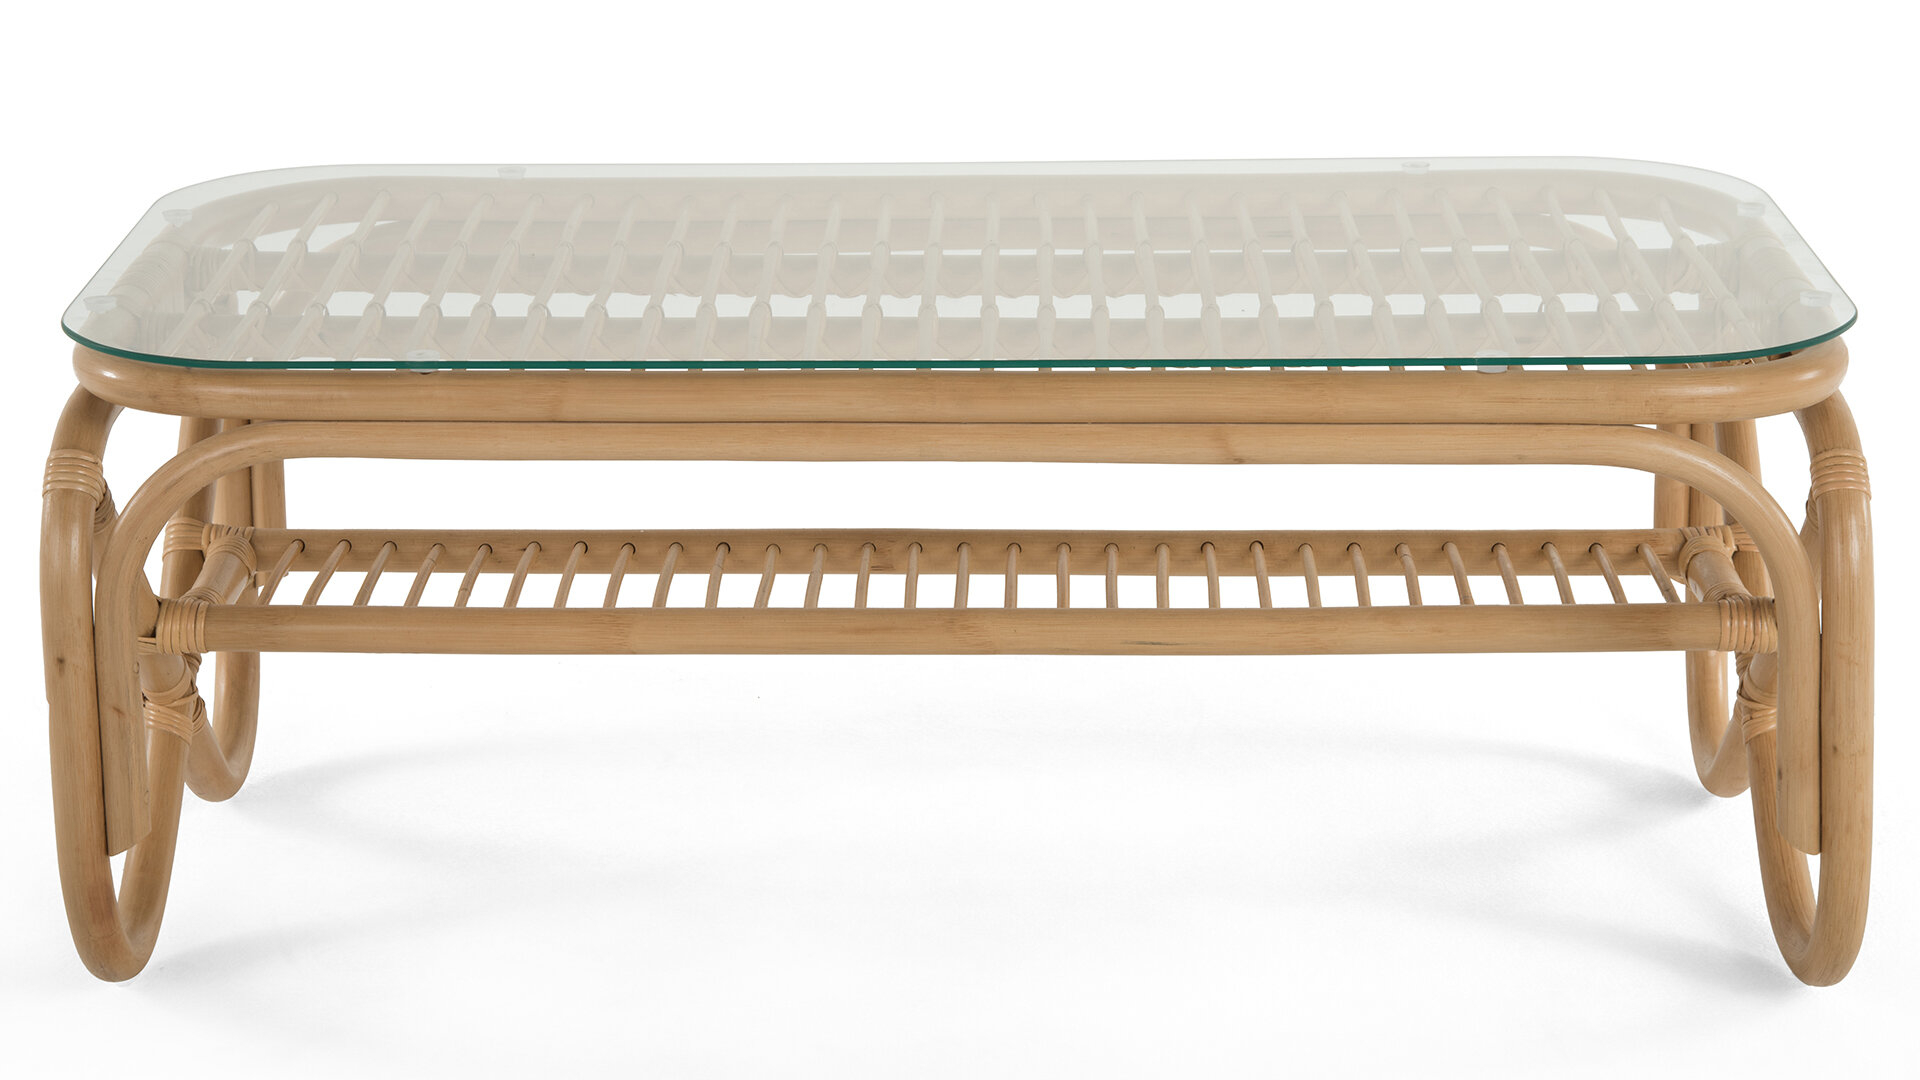 Rattan Coffee Table You Ll Love In 2021 Visualhunt